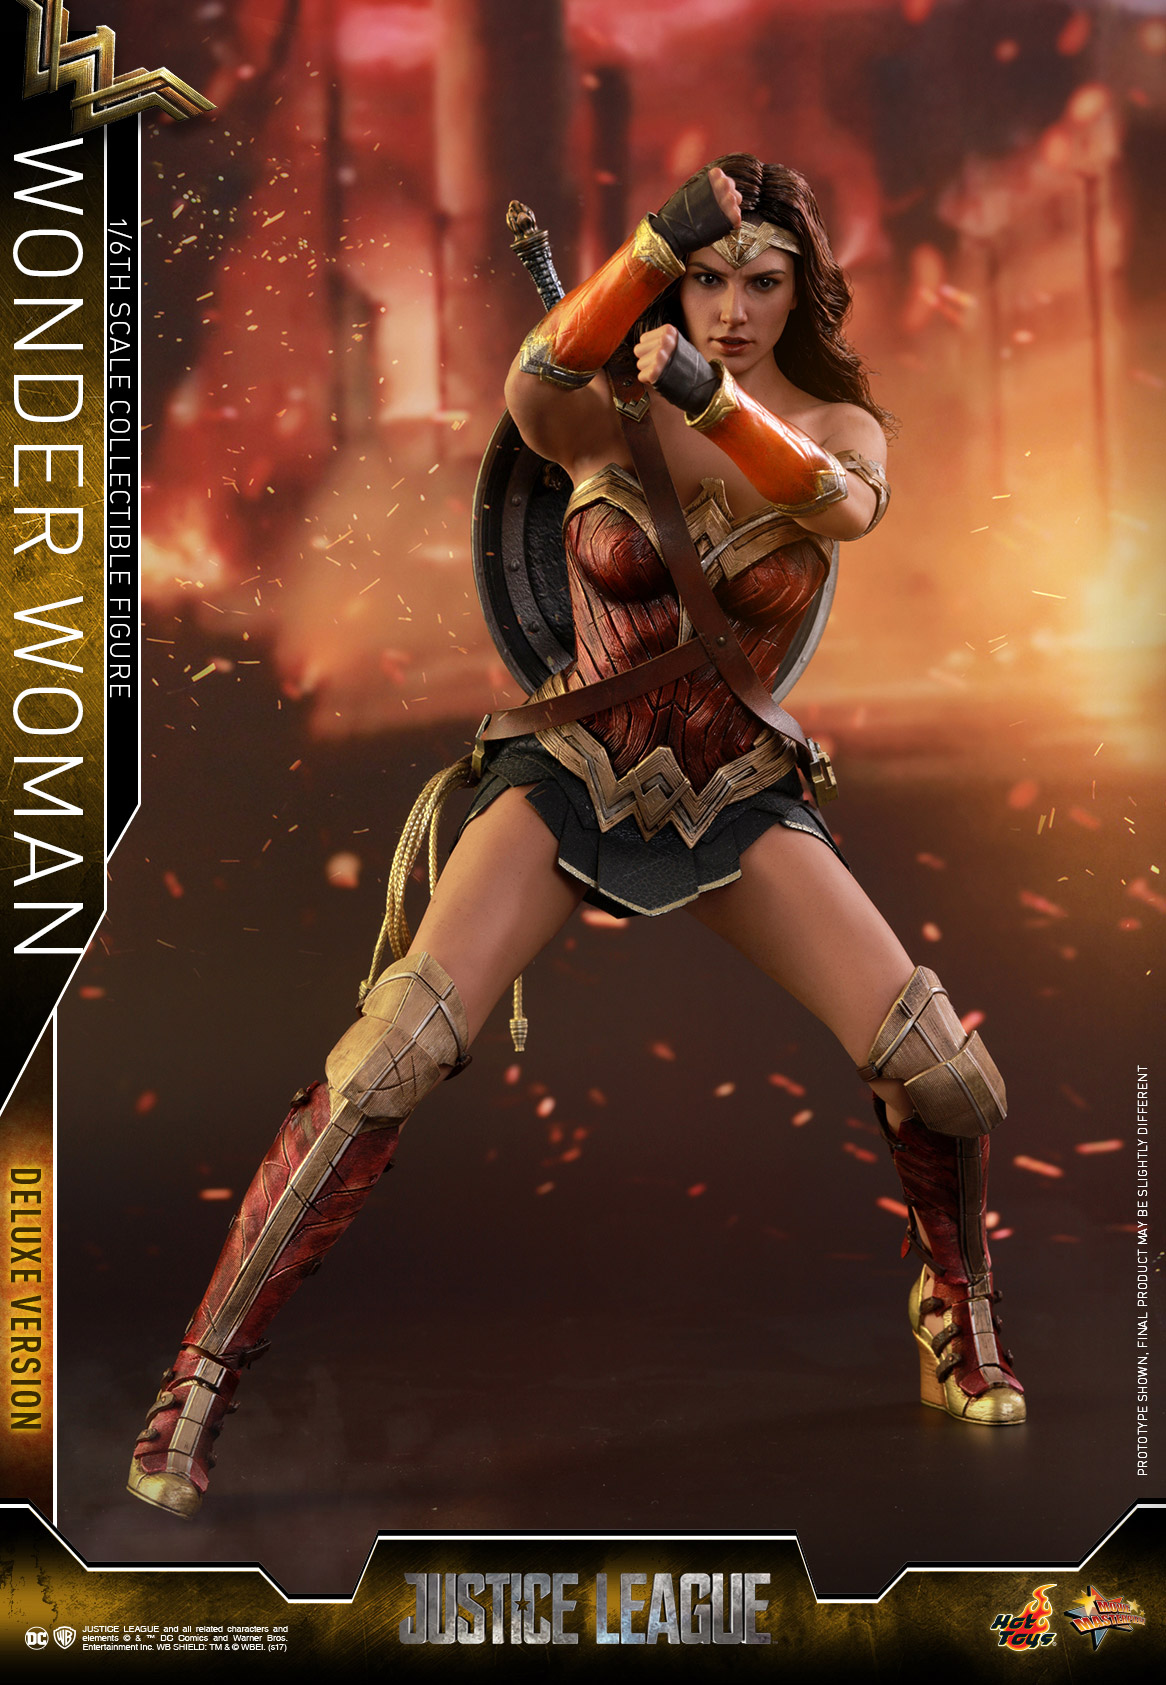 Hot-Toys-Justice-League-Wonder-Woman-collectible-figure-Deluxe_PR-8.jpg